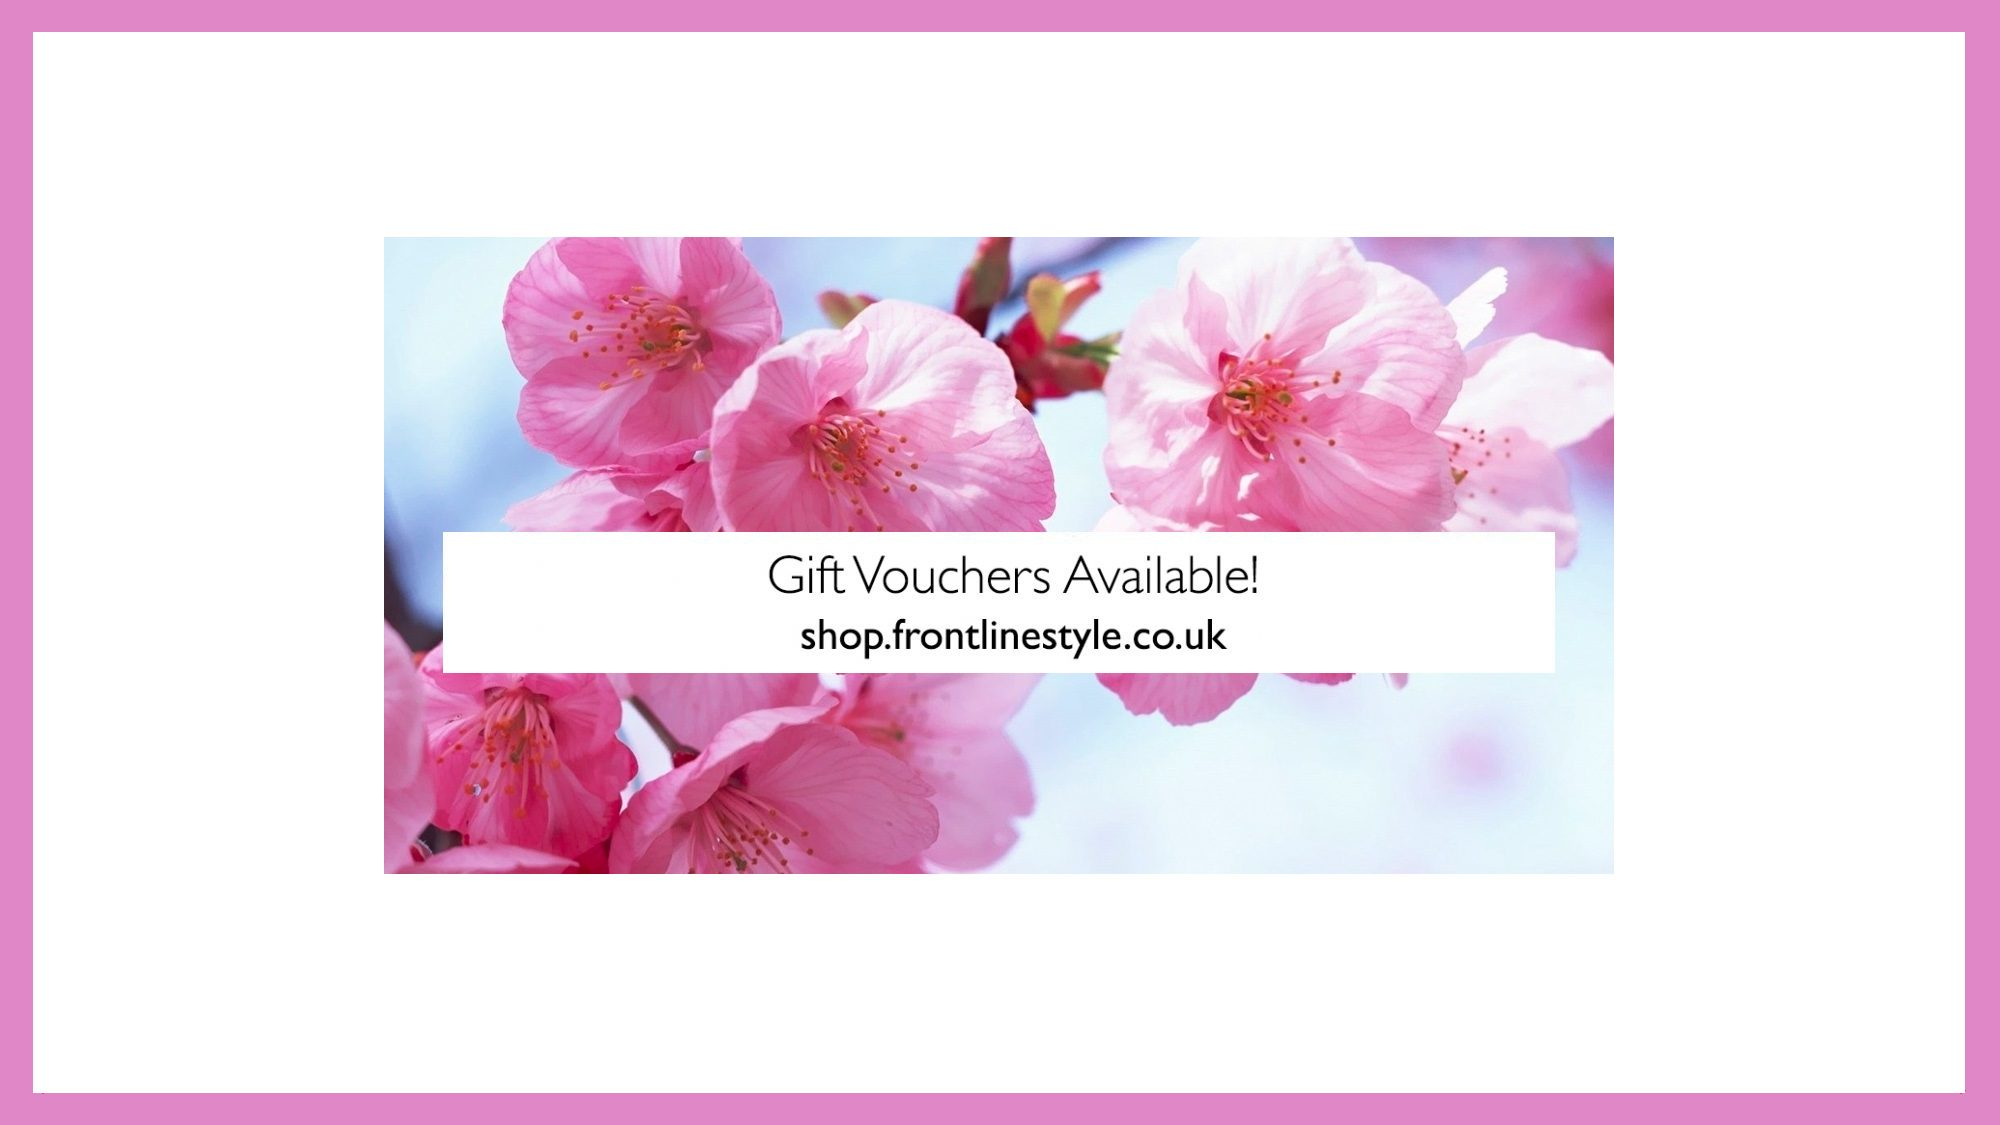 Frontlinestyle Gift Vouchers Available Pink Spring Flowers 2020